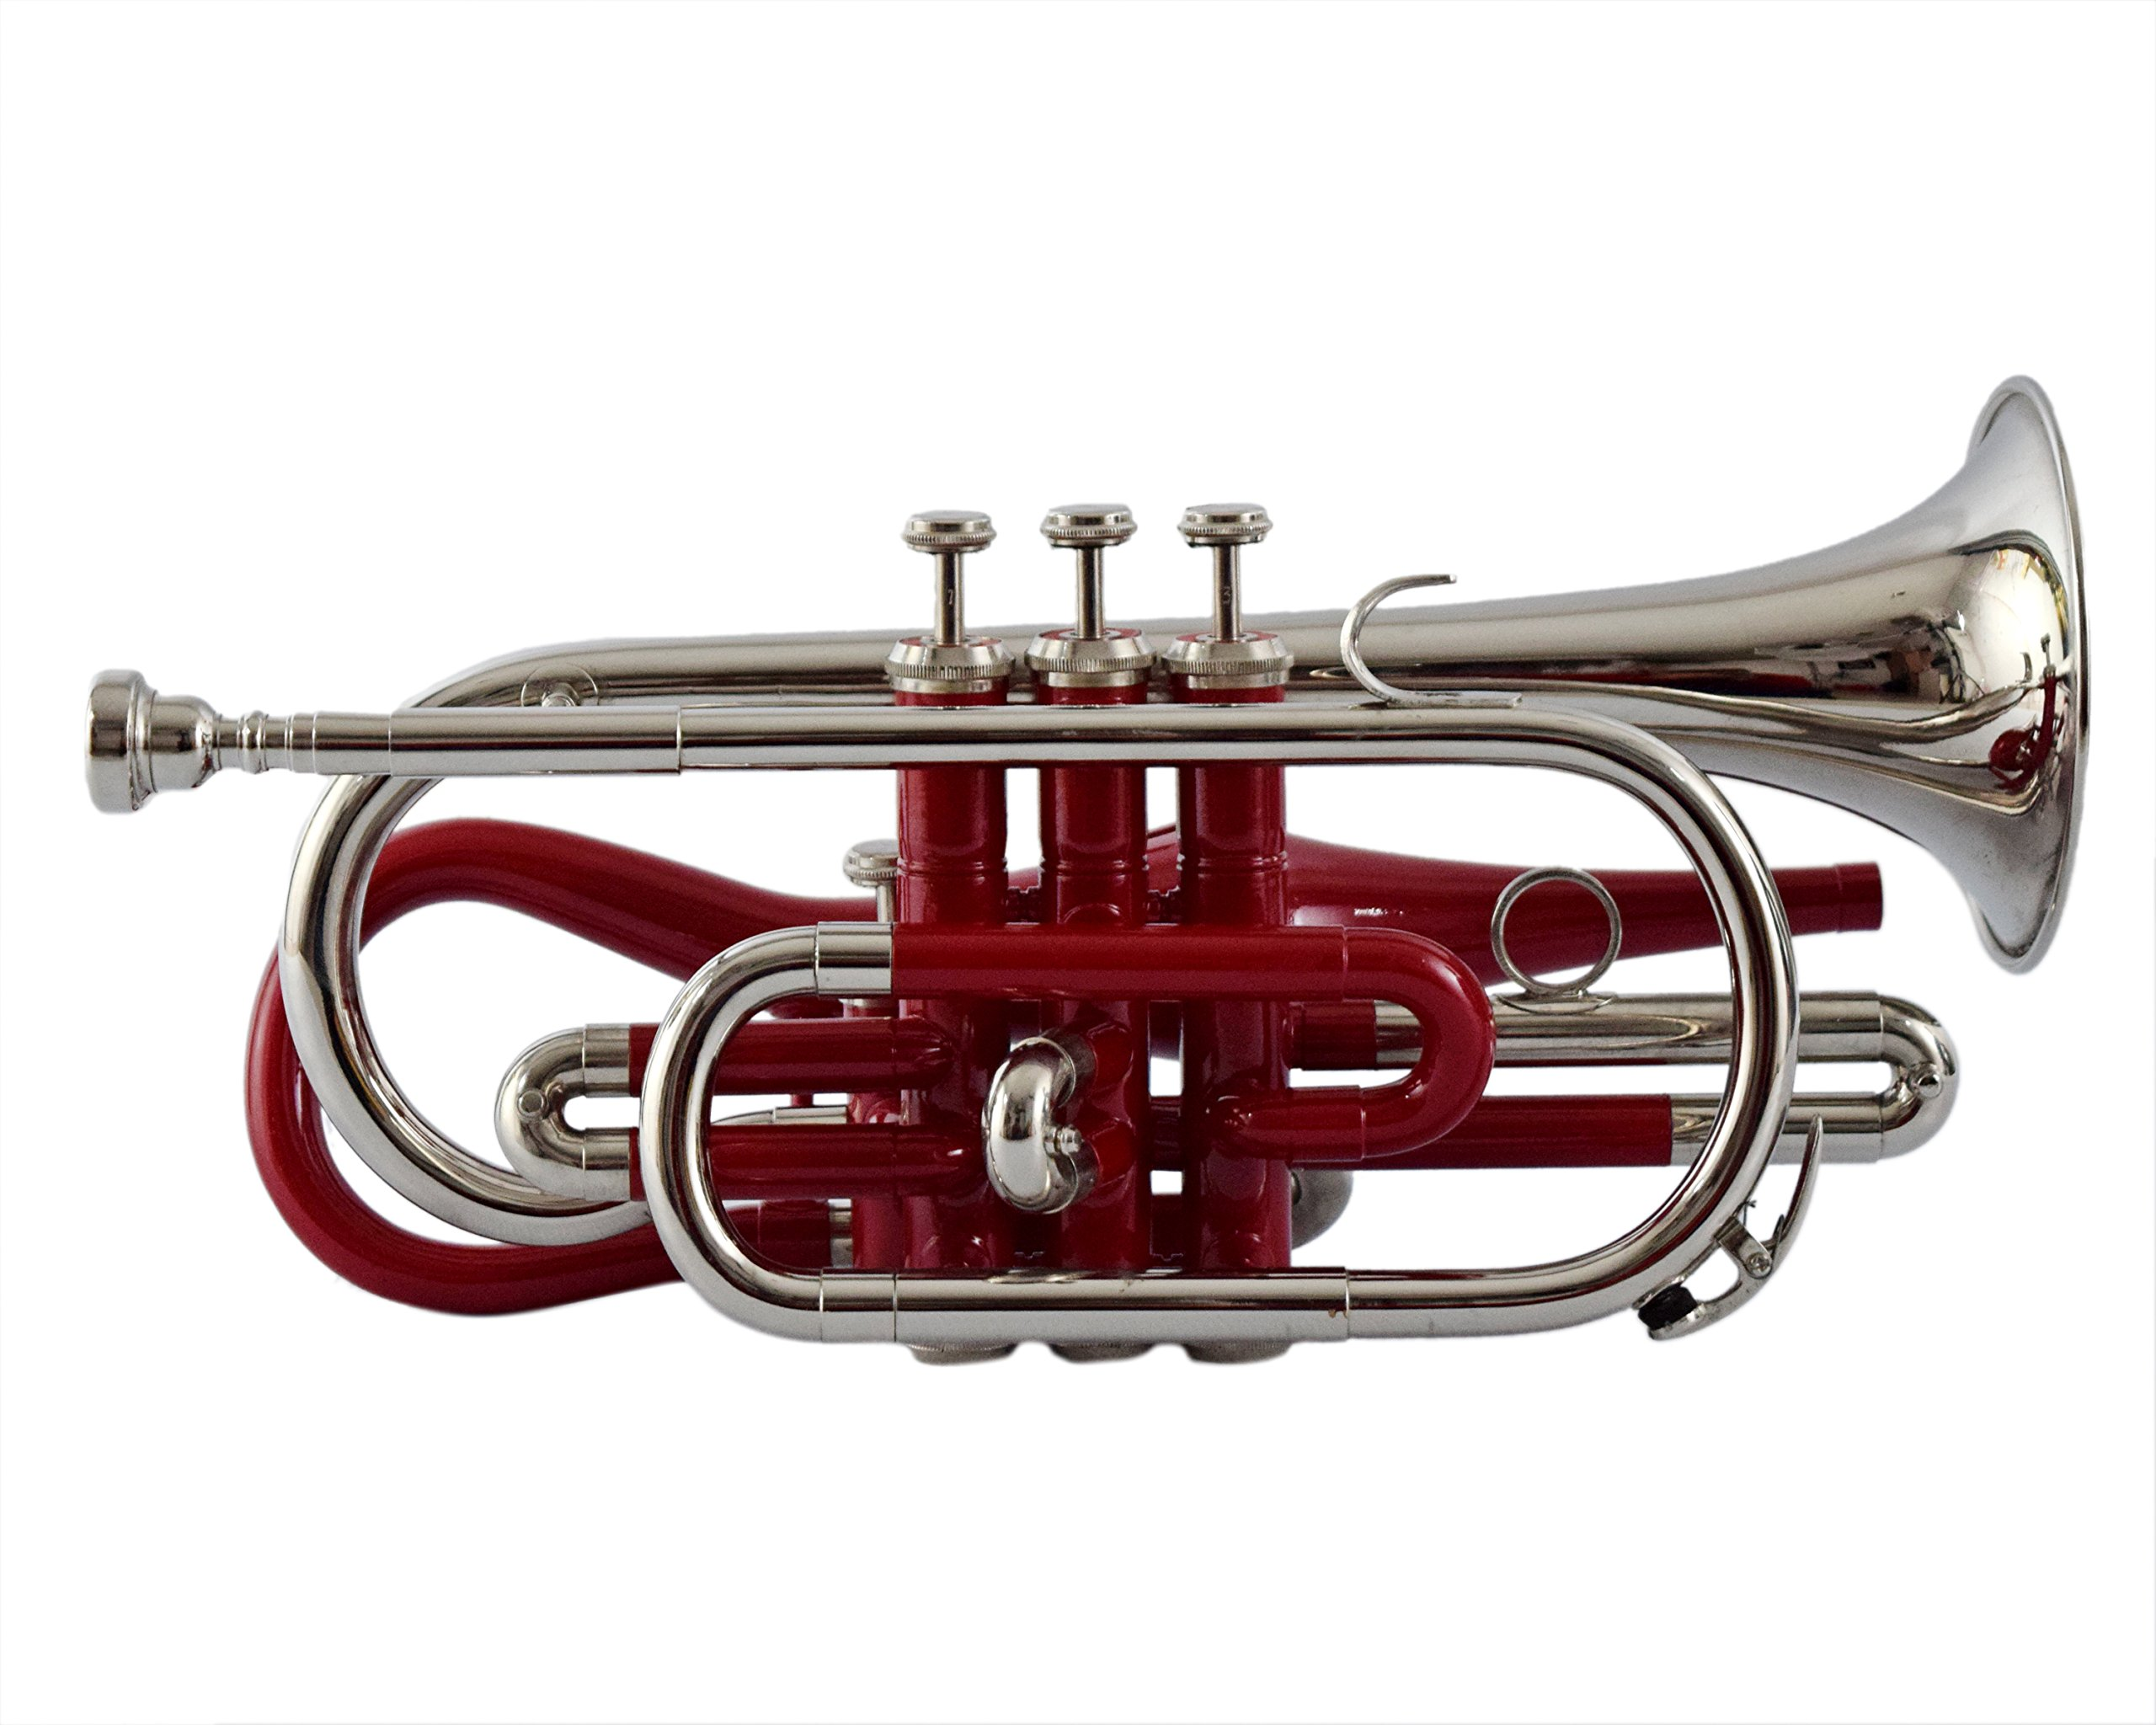 NASIR ALI BEAUTIFUL CORNET BP PITCH RED+ NICKEL COLORED WITH CASE AND MP by NASIR ALI (Image #2)